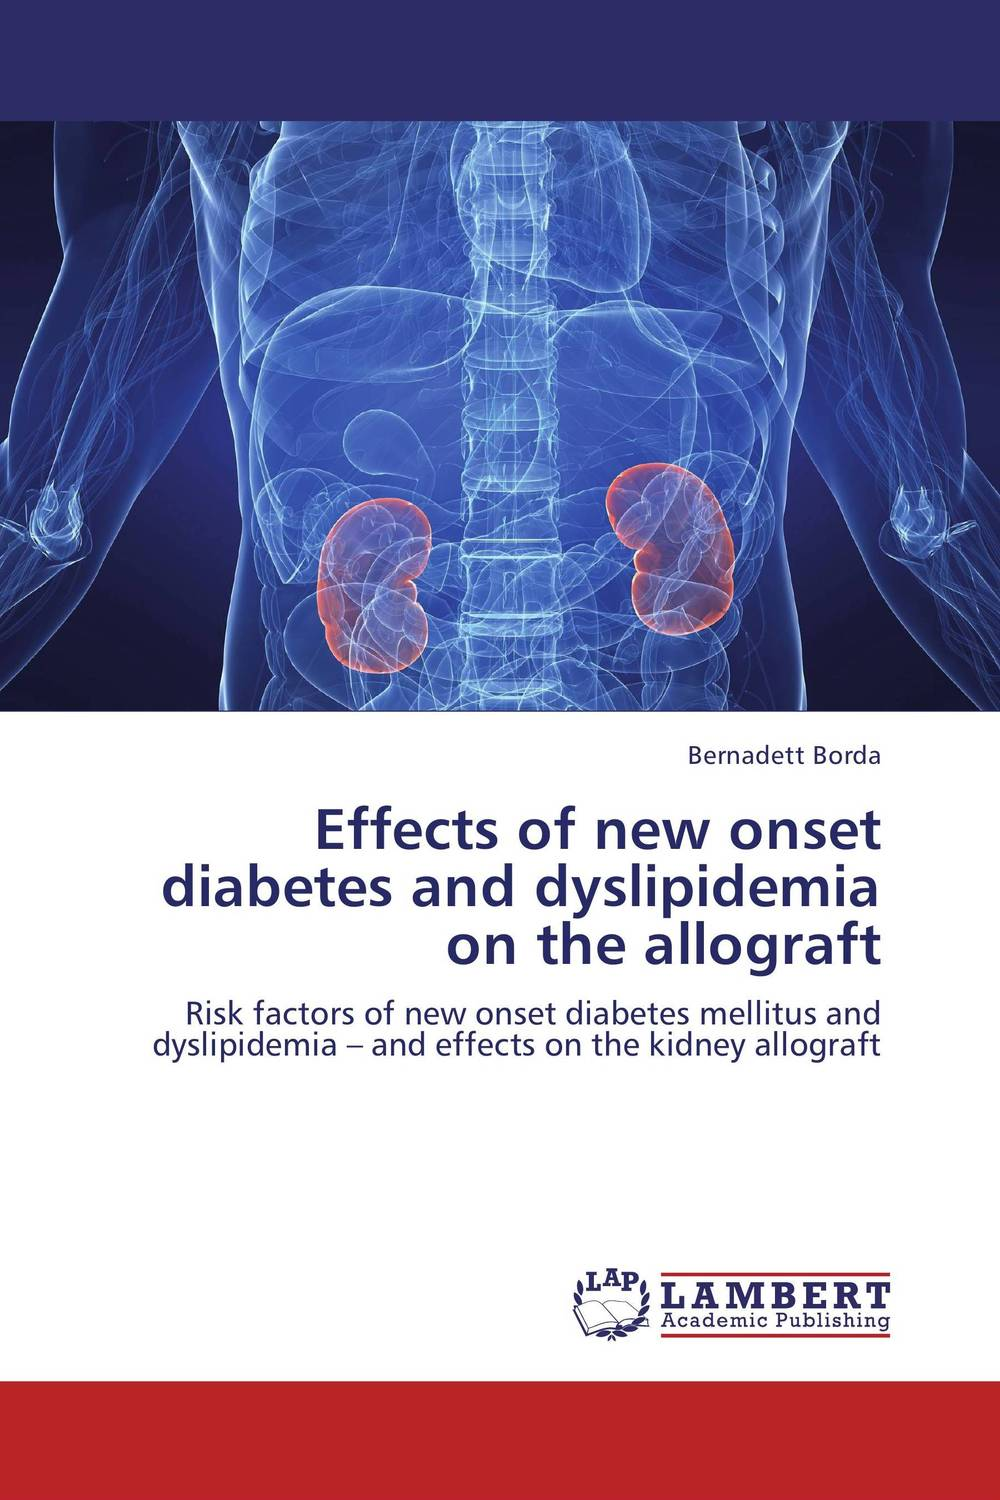 Effects of new onset diabetes and dyslipidemia on the allograft